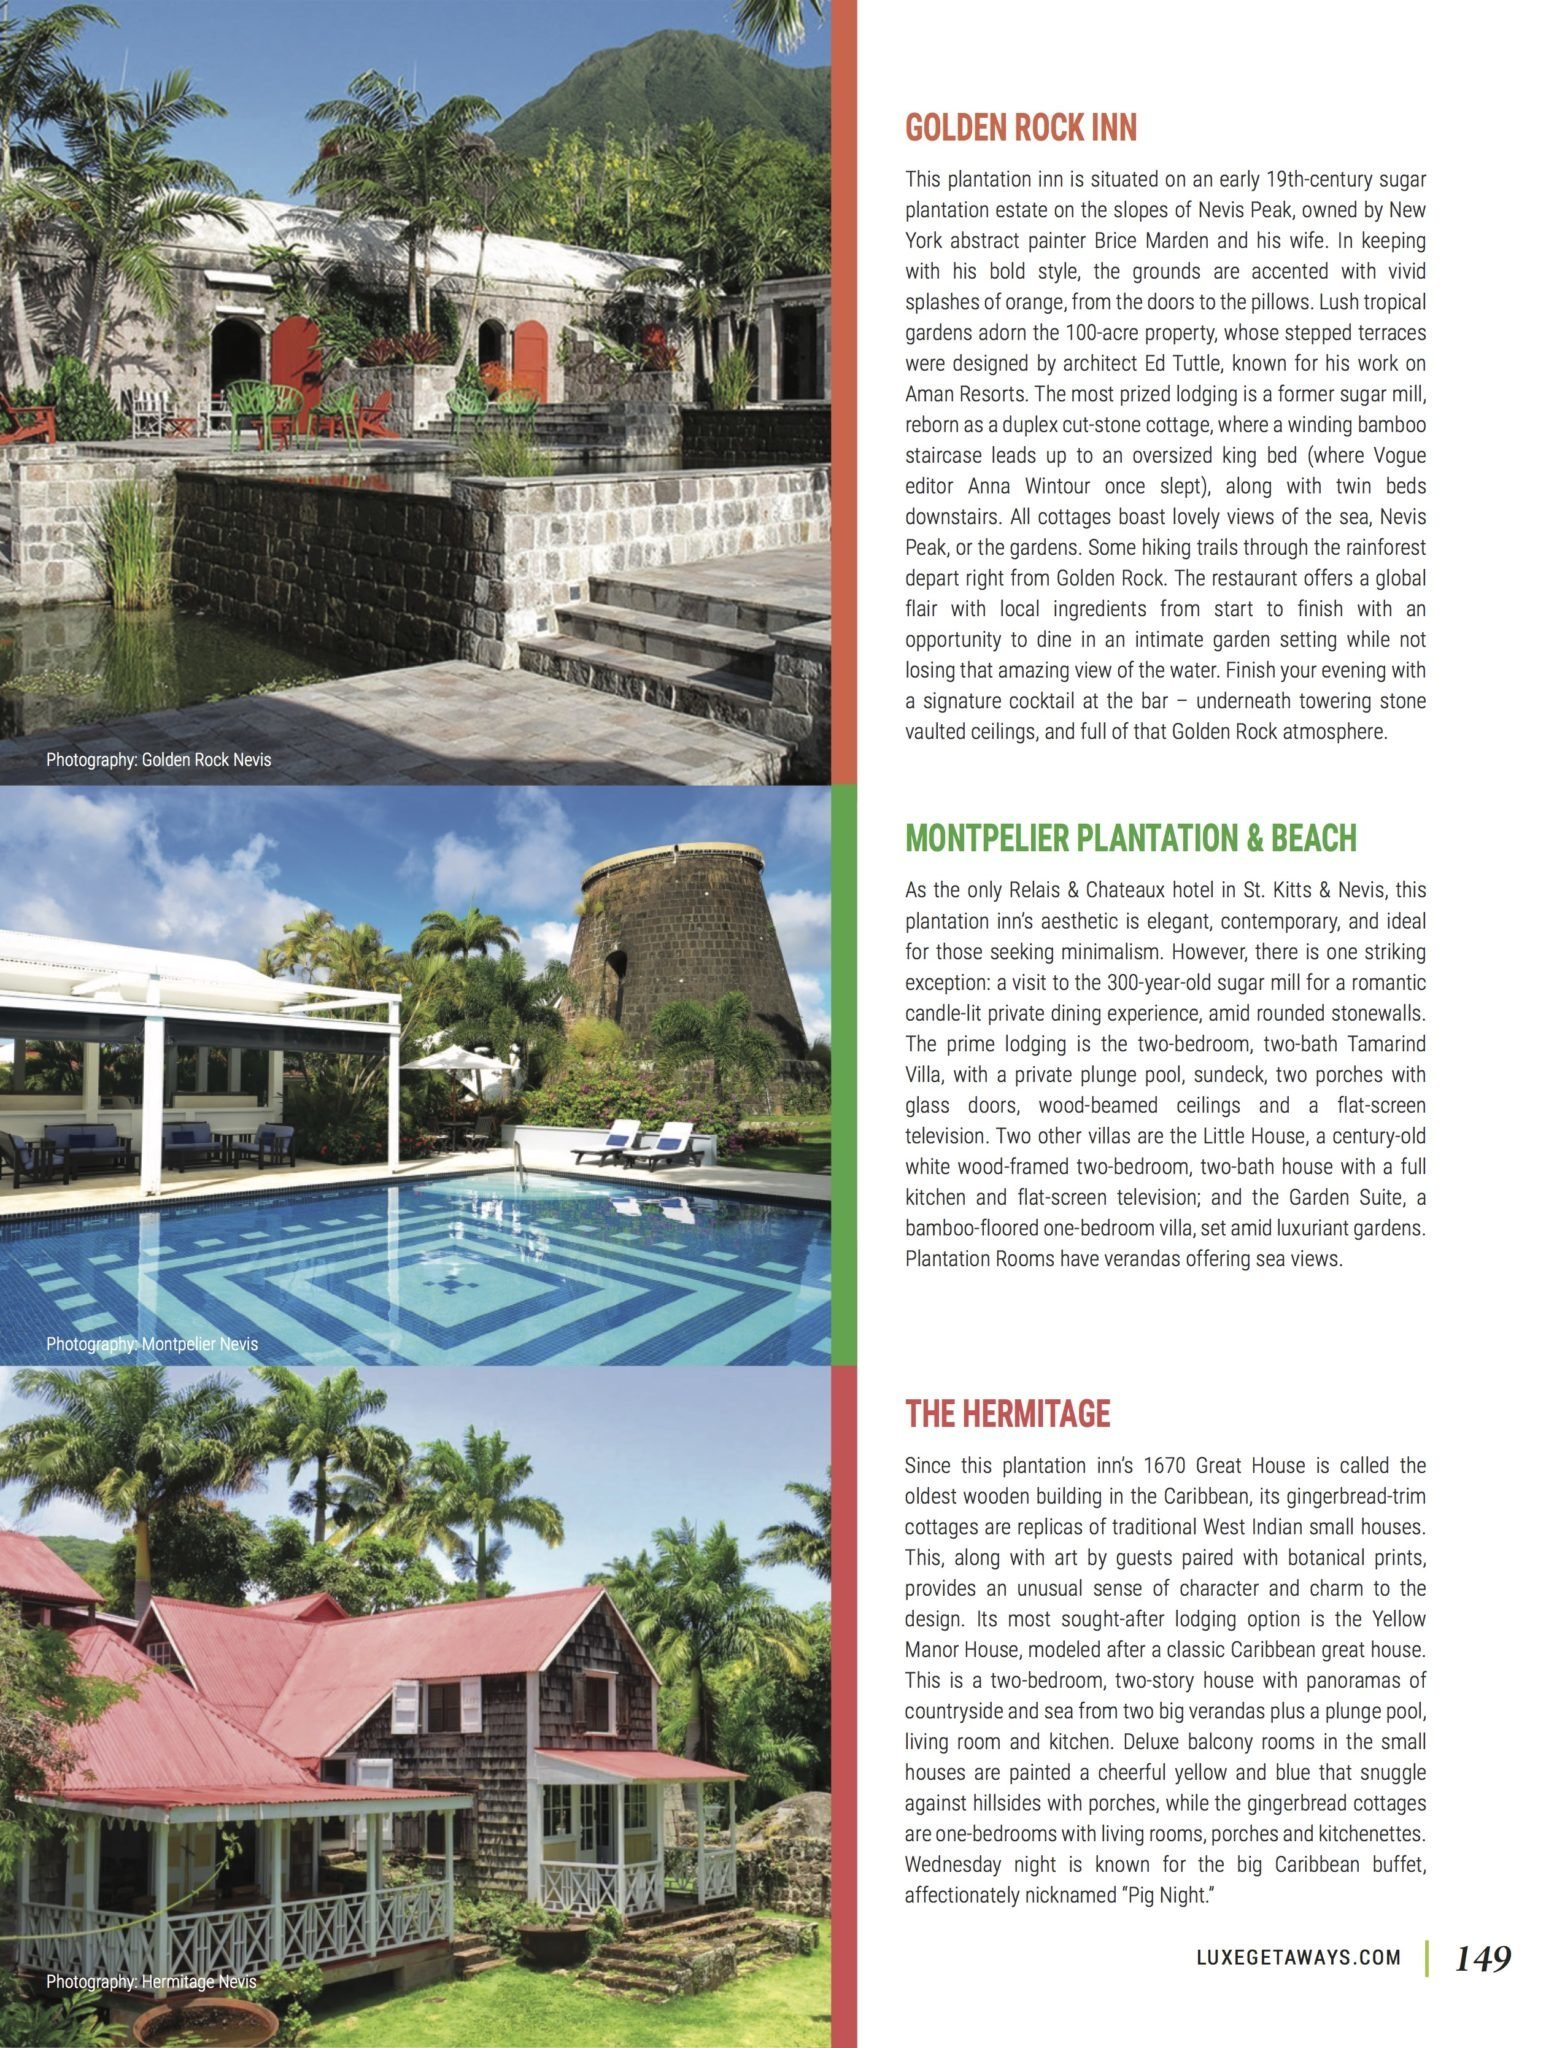 LuxeGetaways - Luxury Travel - Luxury Travel Magazine - Luxe Getaways - Luxury Lifestyle - Fall/Winter 2017 Magazine Issue - Digital Magazine - Travel Magazine - Nevis - St Kitts - Caribbean - Luxury Hotels Nevis - Hamilton